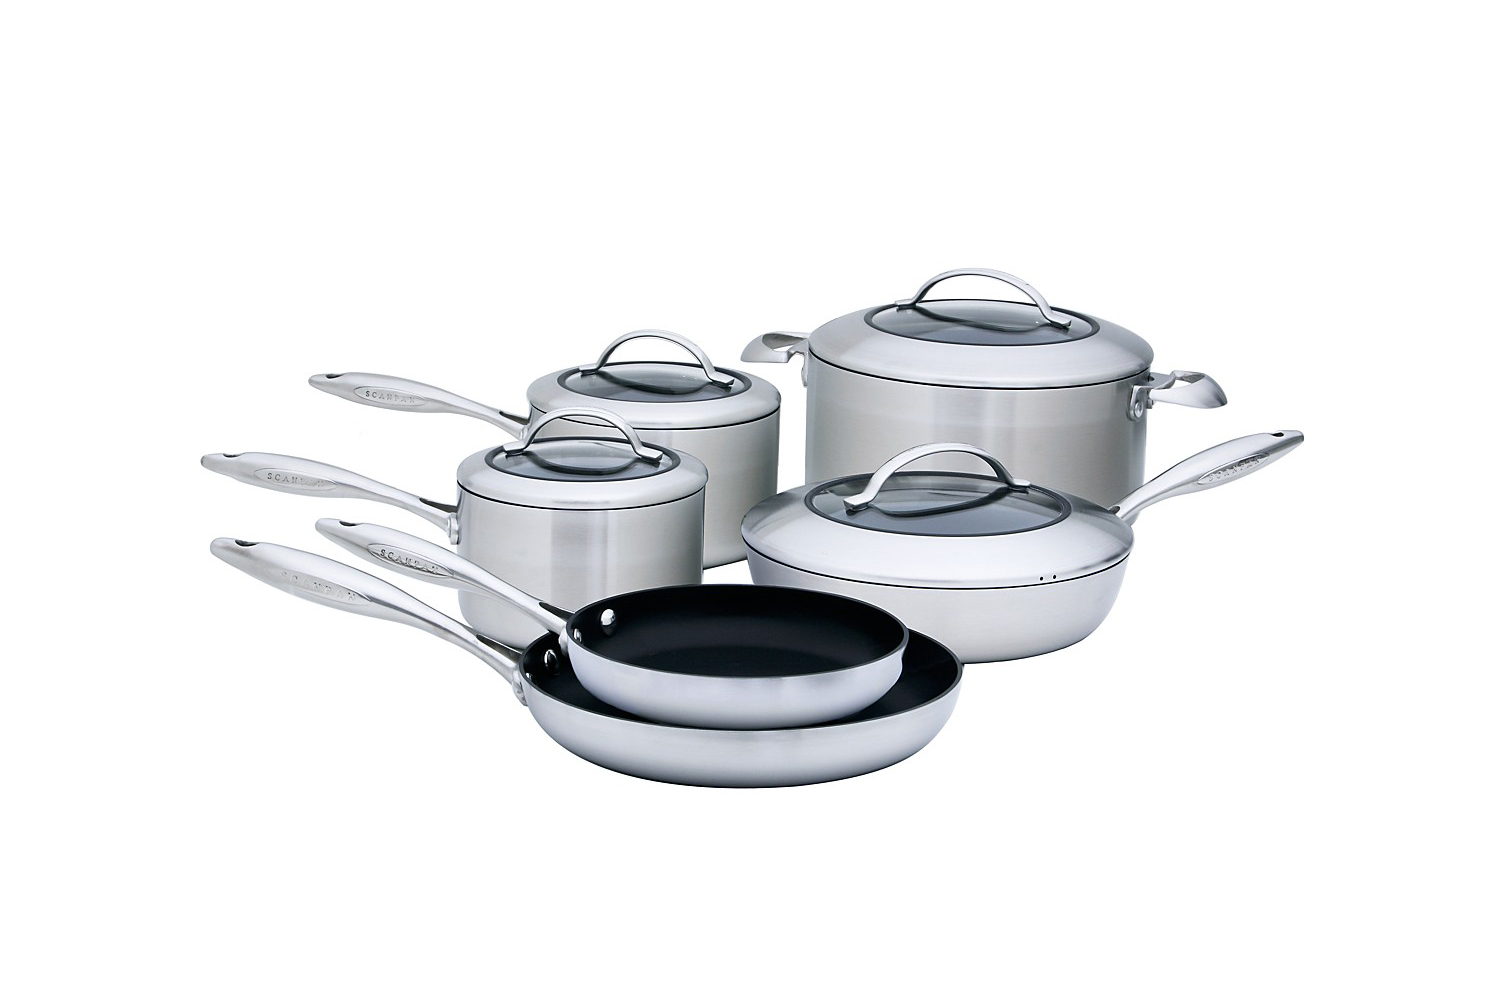 Scanpan CTX 10 Piece Nonstick Cookware Set